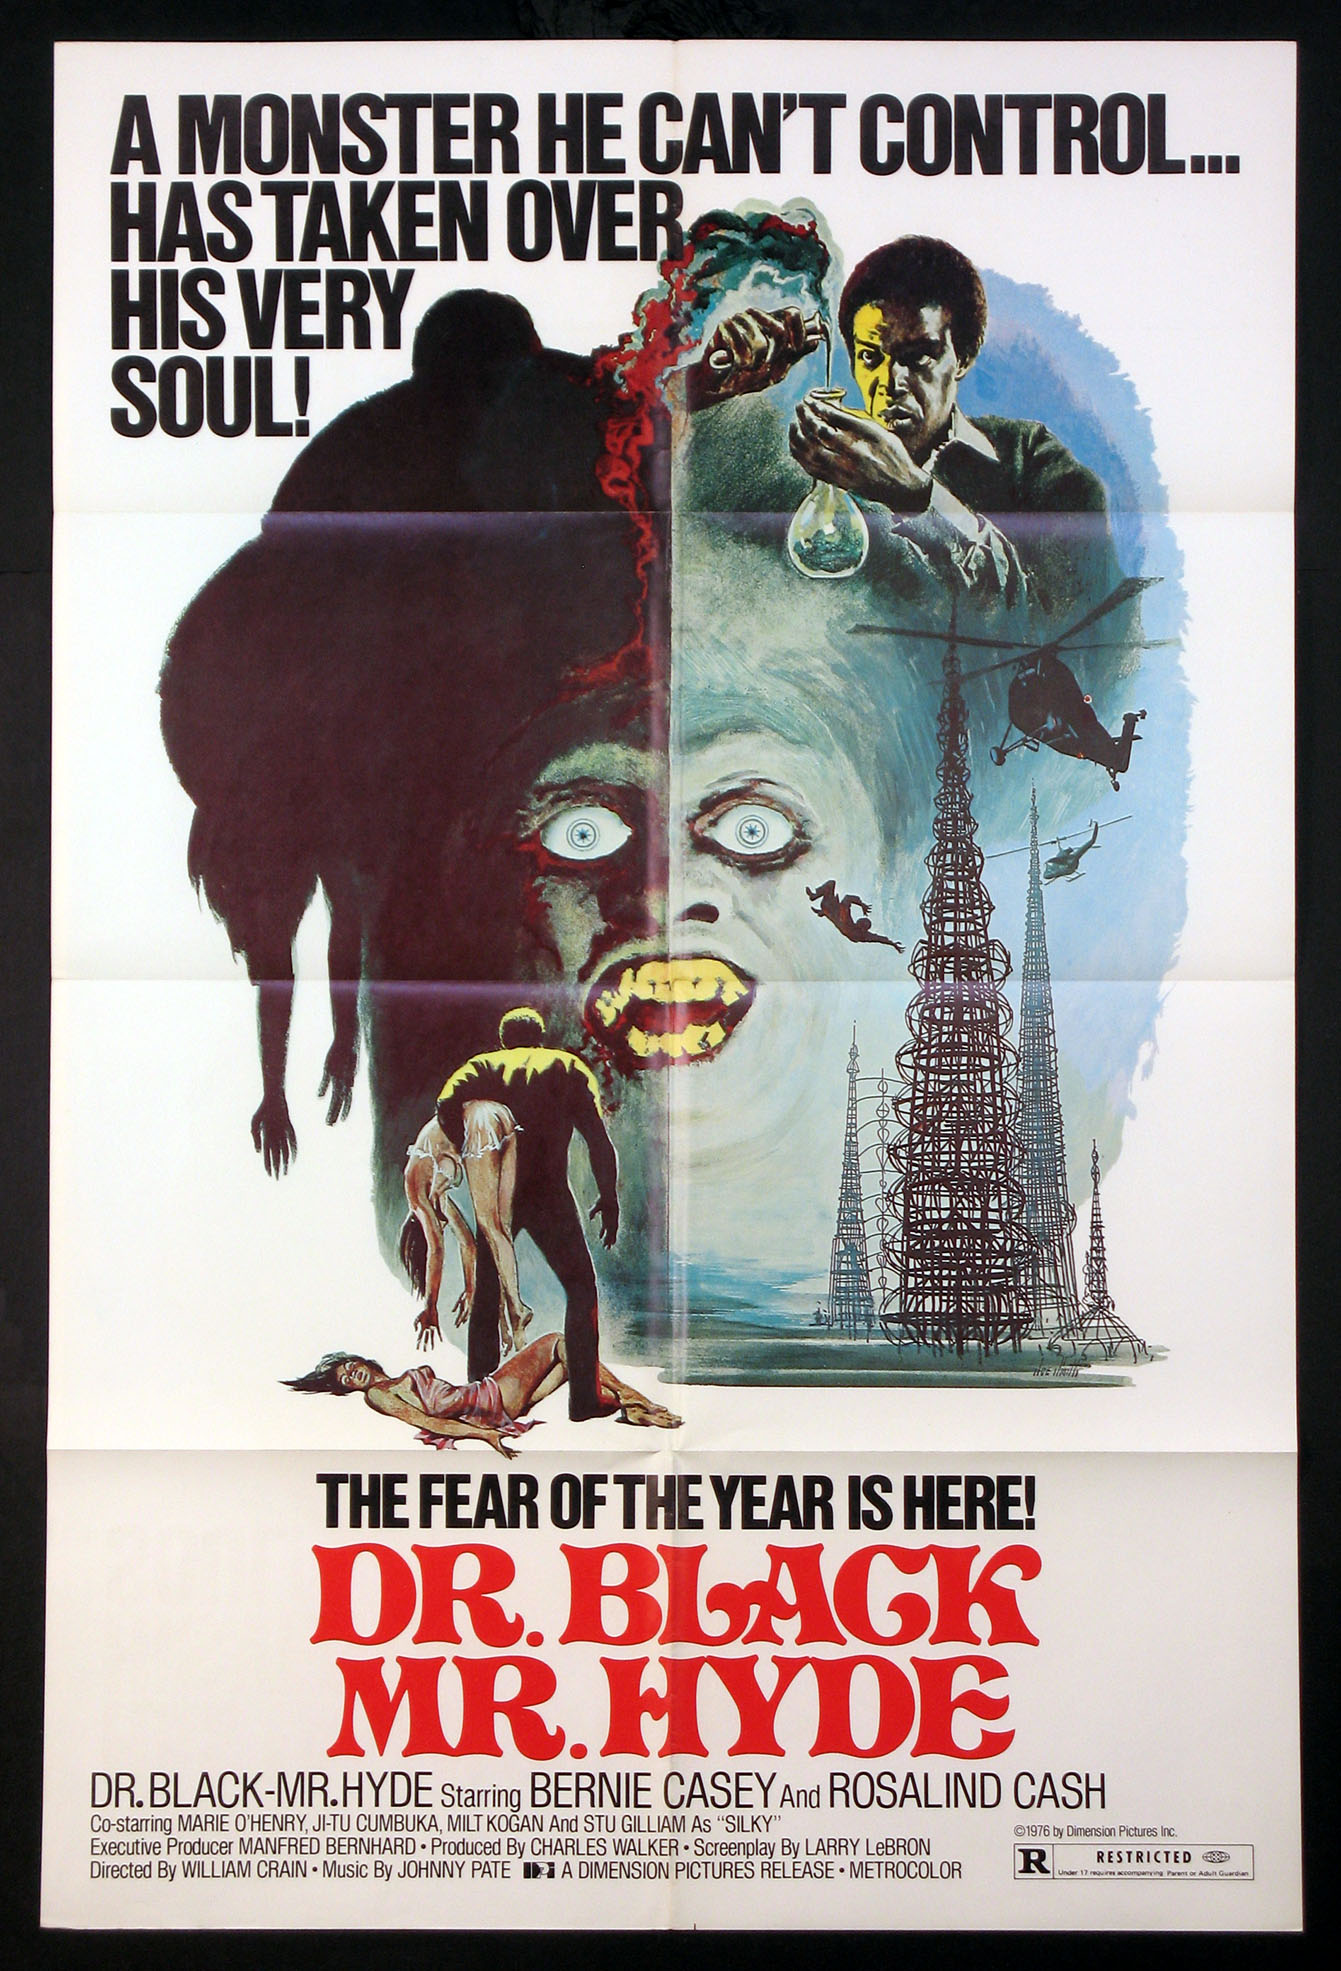 DR. BLACK MR. HYDE @ FilmPosters.com